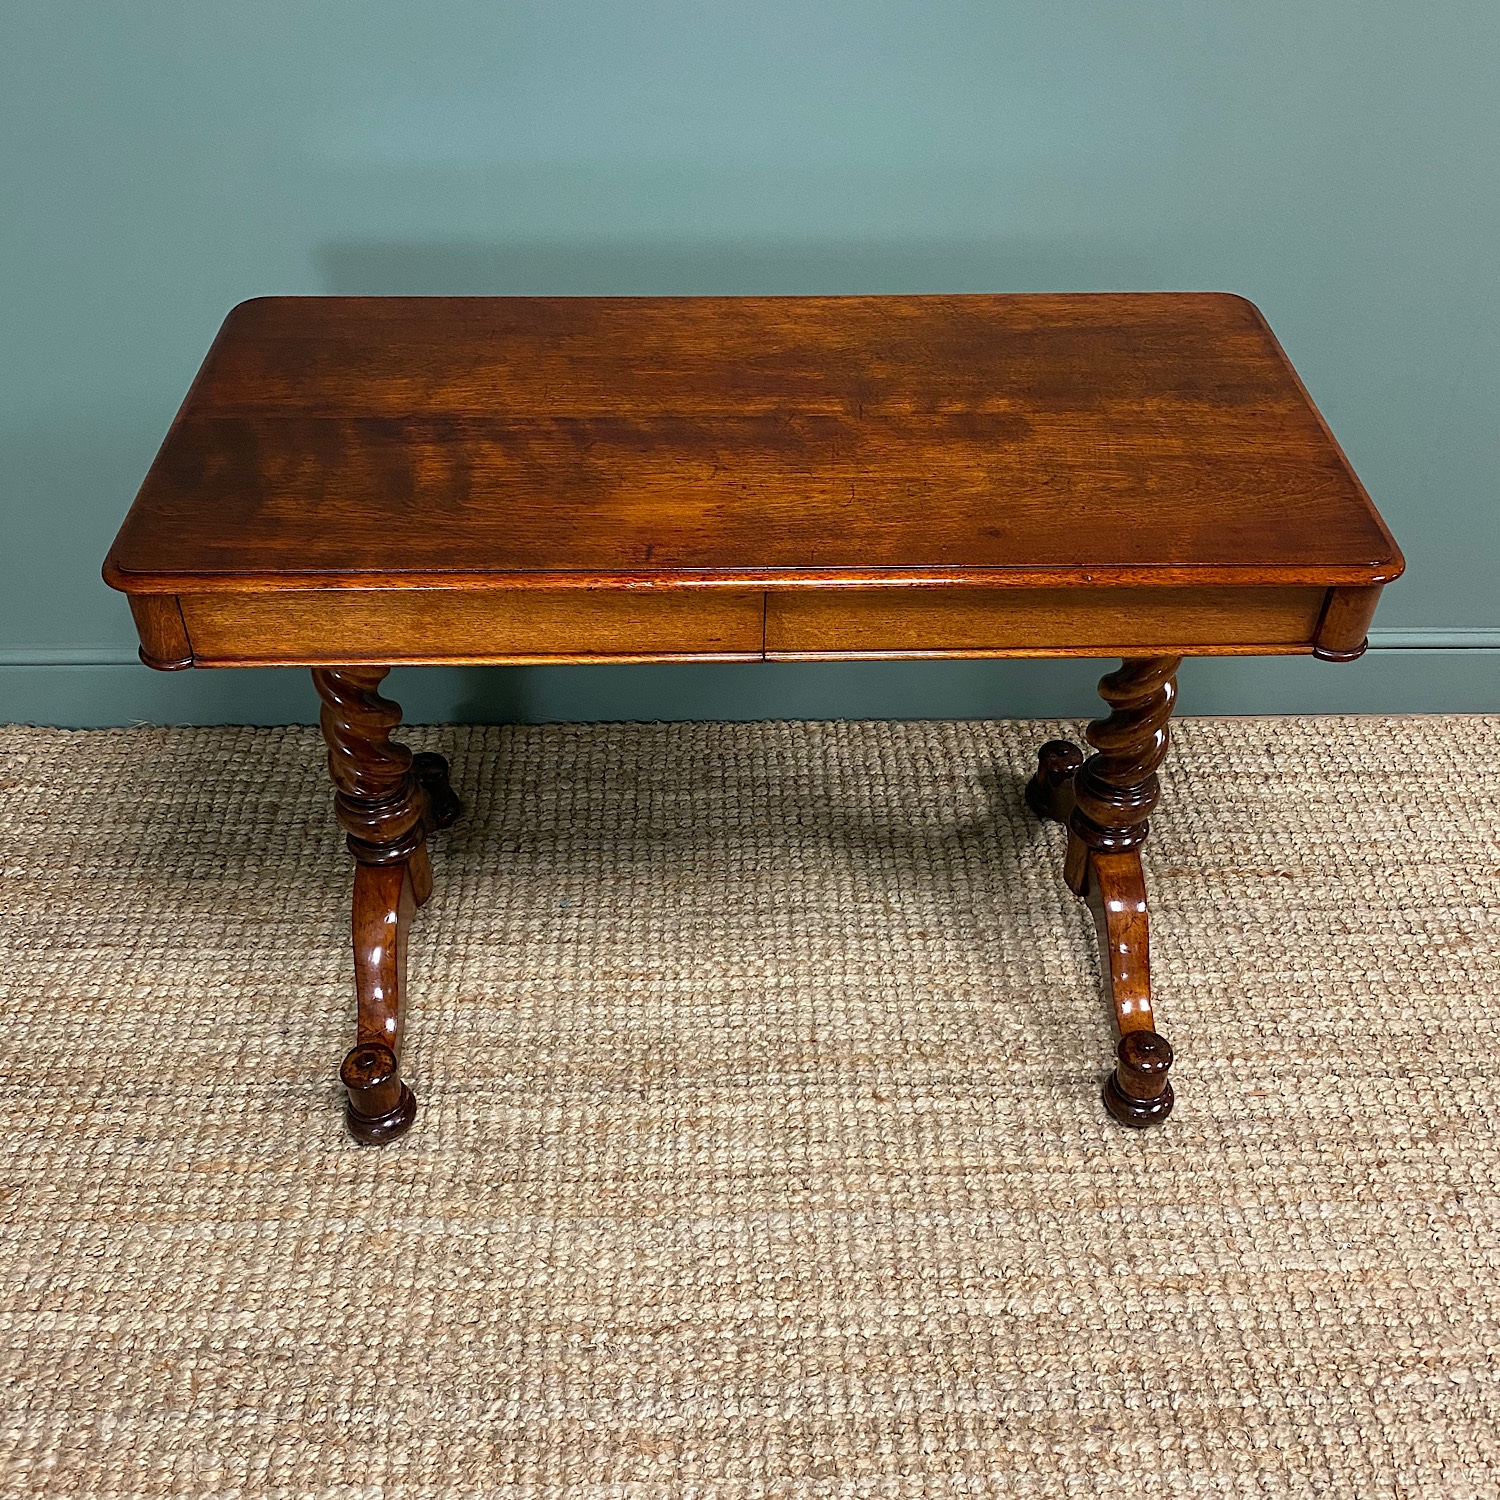 Stunning Antique Mahogany Library Table by Charles Hindley & Sons